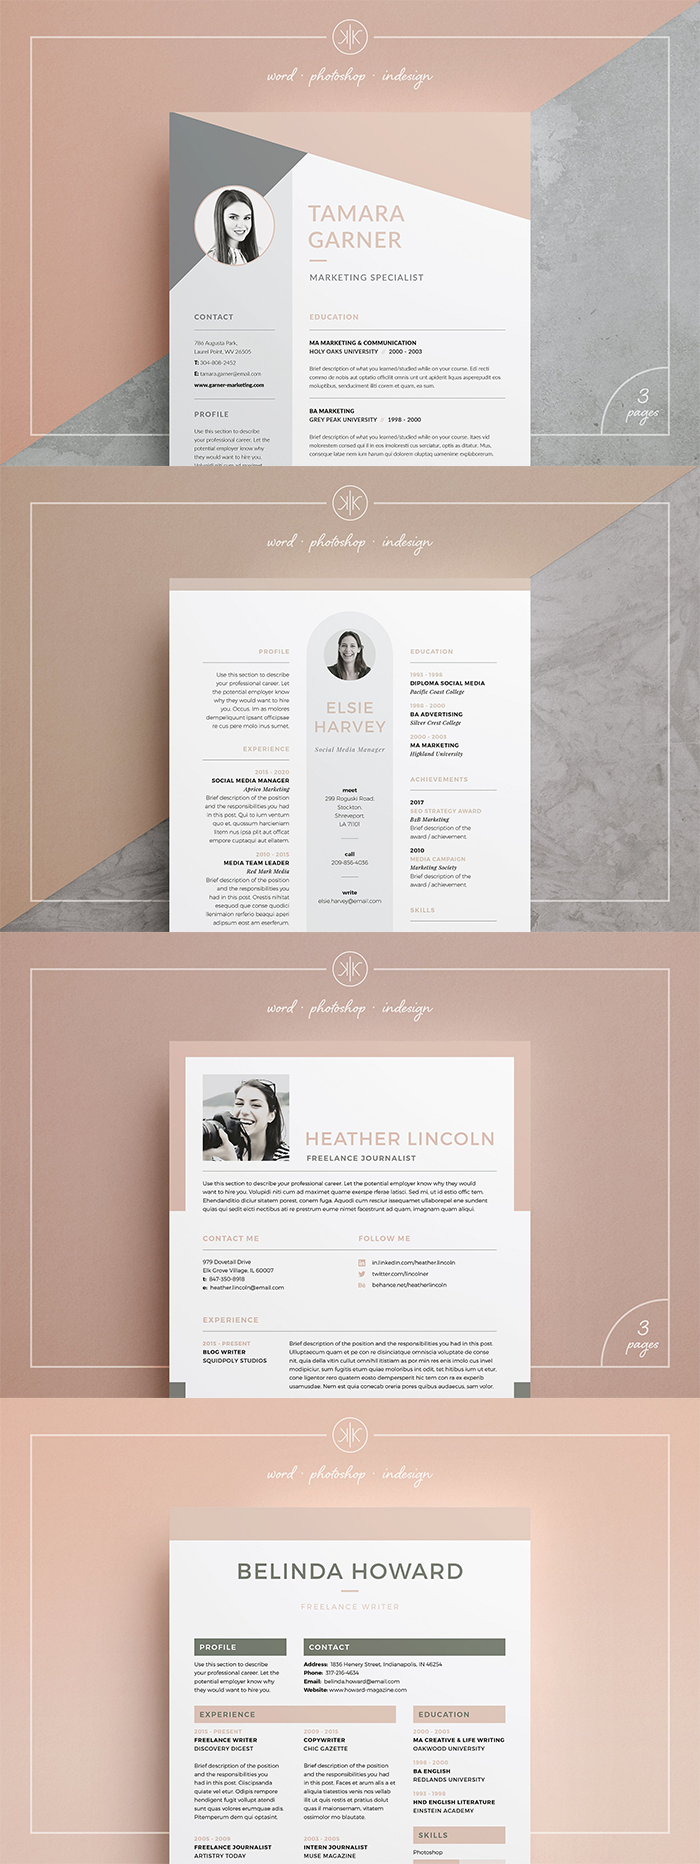 professional compact resume  cv design with matching cover letter for those looking for a high